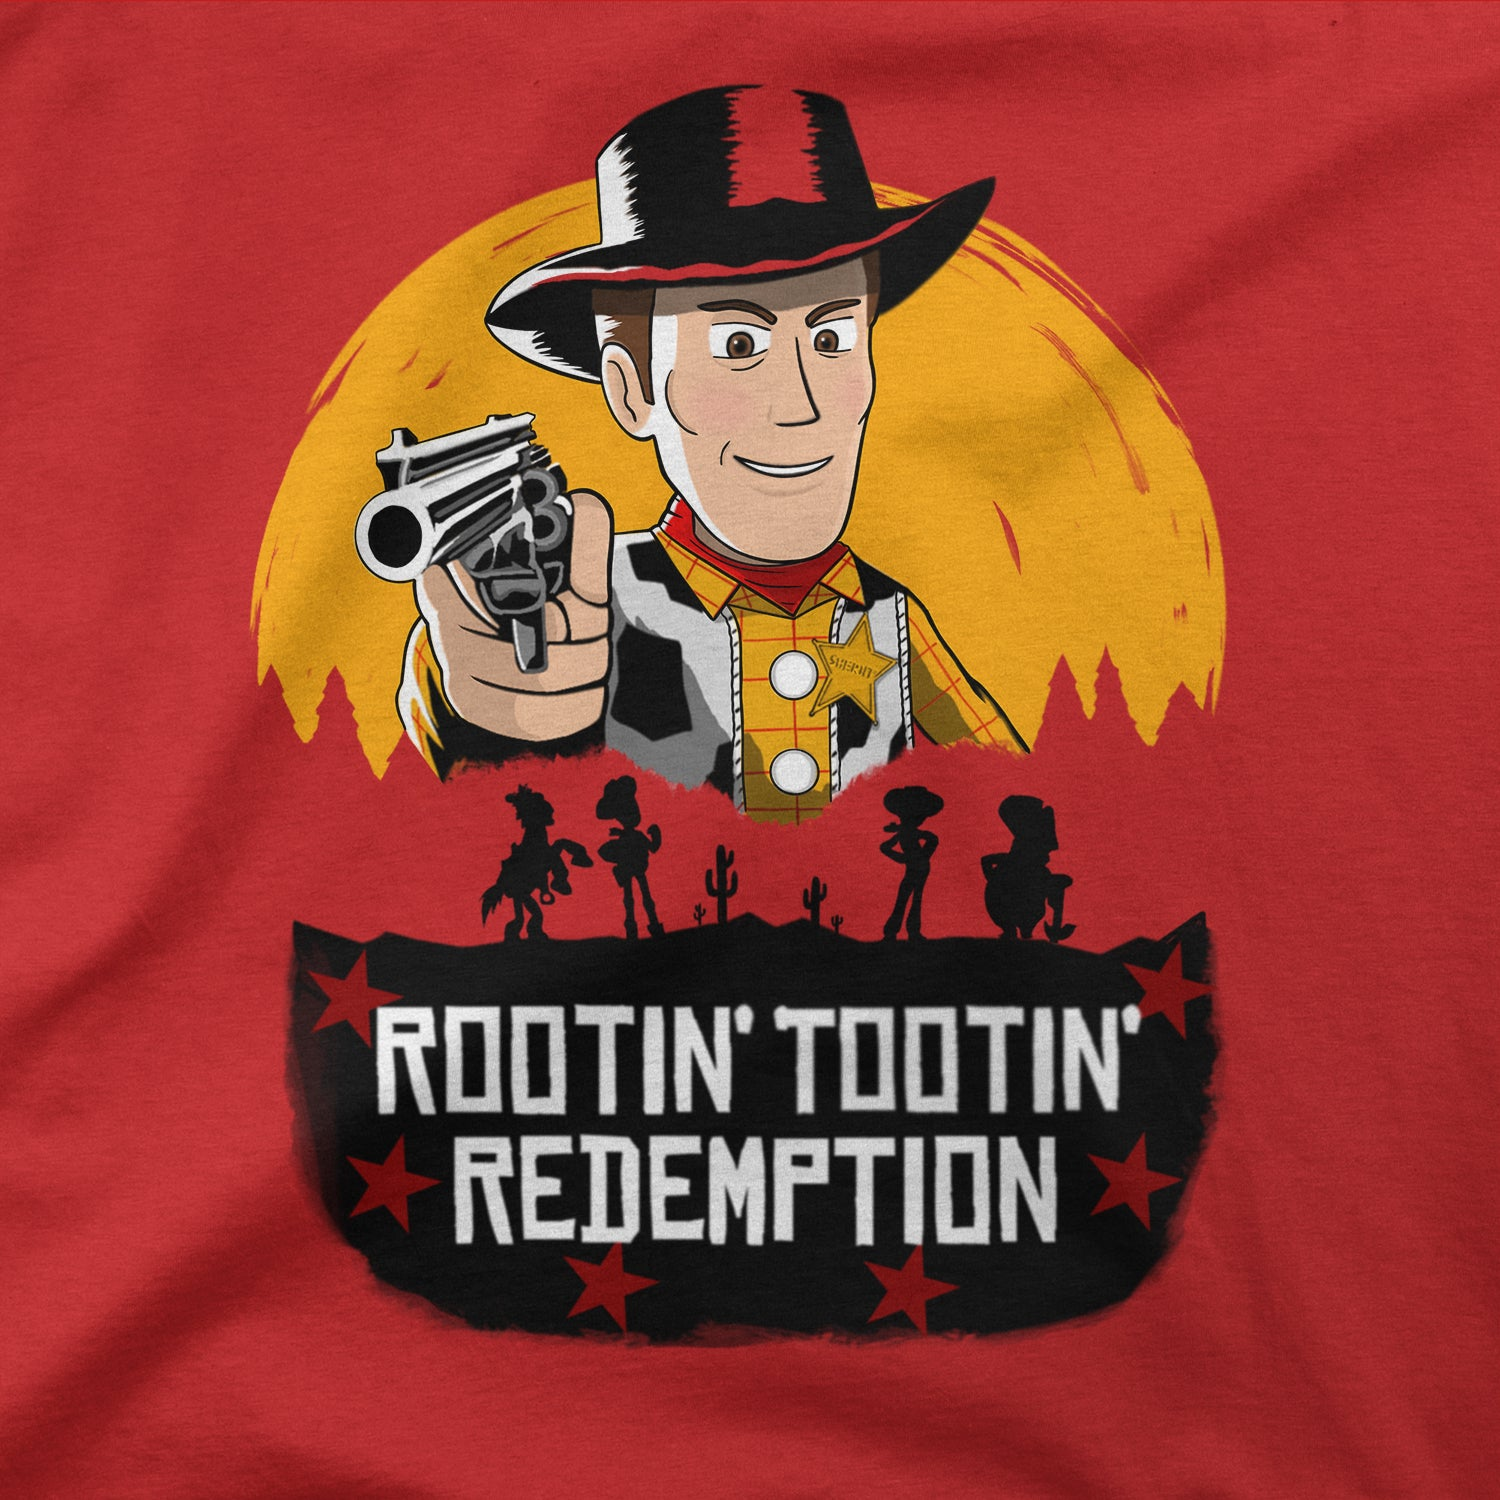 Rootin' Tootin' Redemption